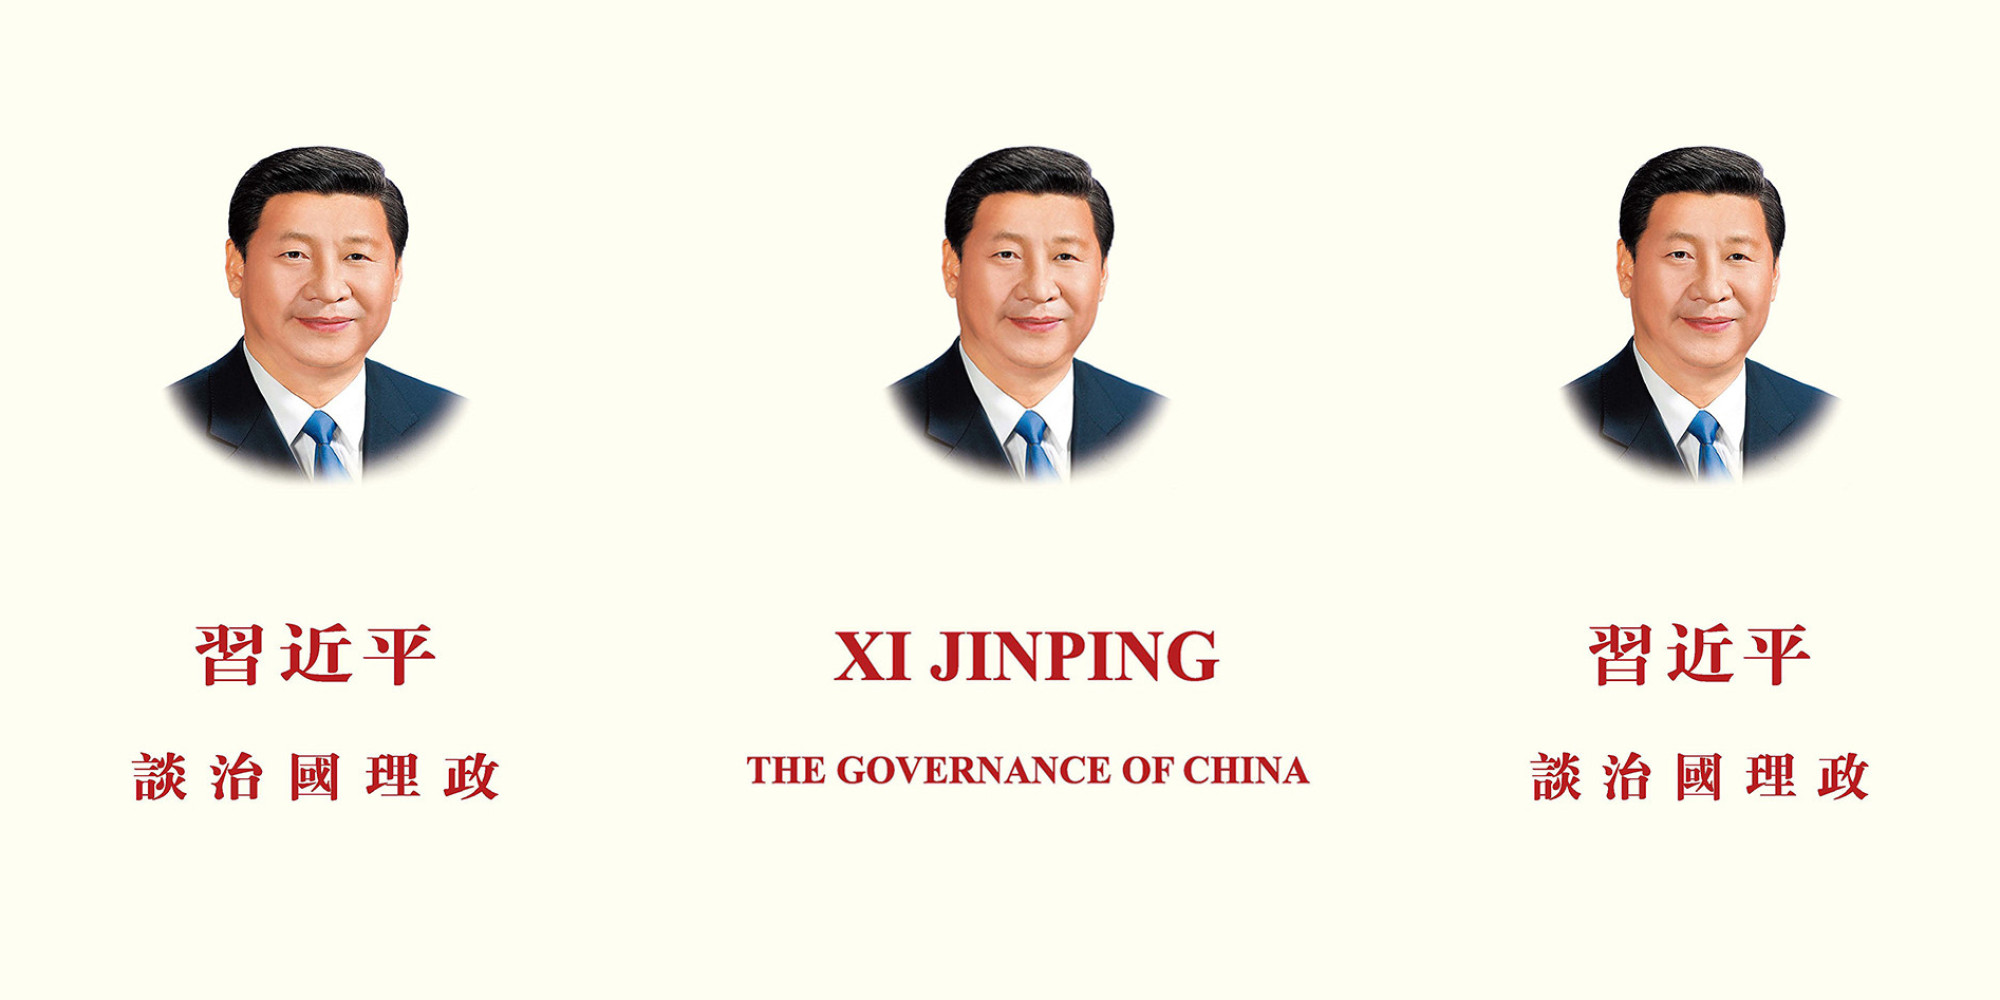 o-XI-JINPING-THE-GOVERNANCE-OF-CHINA-facebook